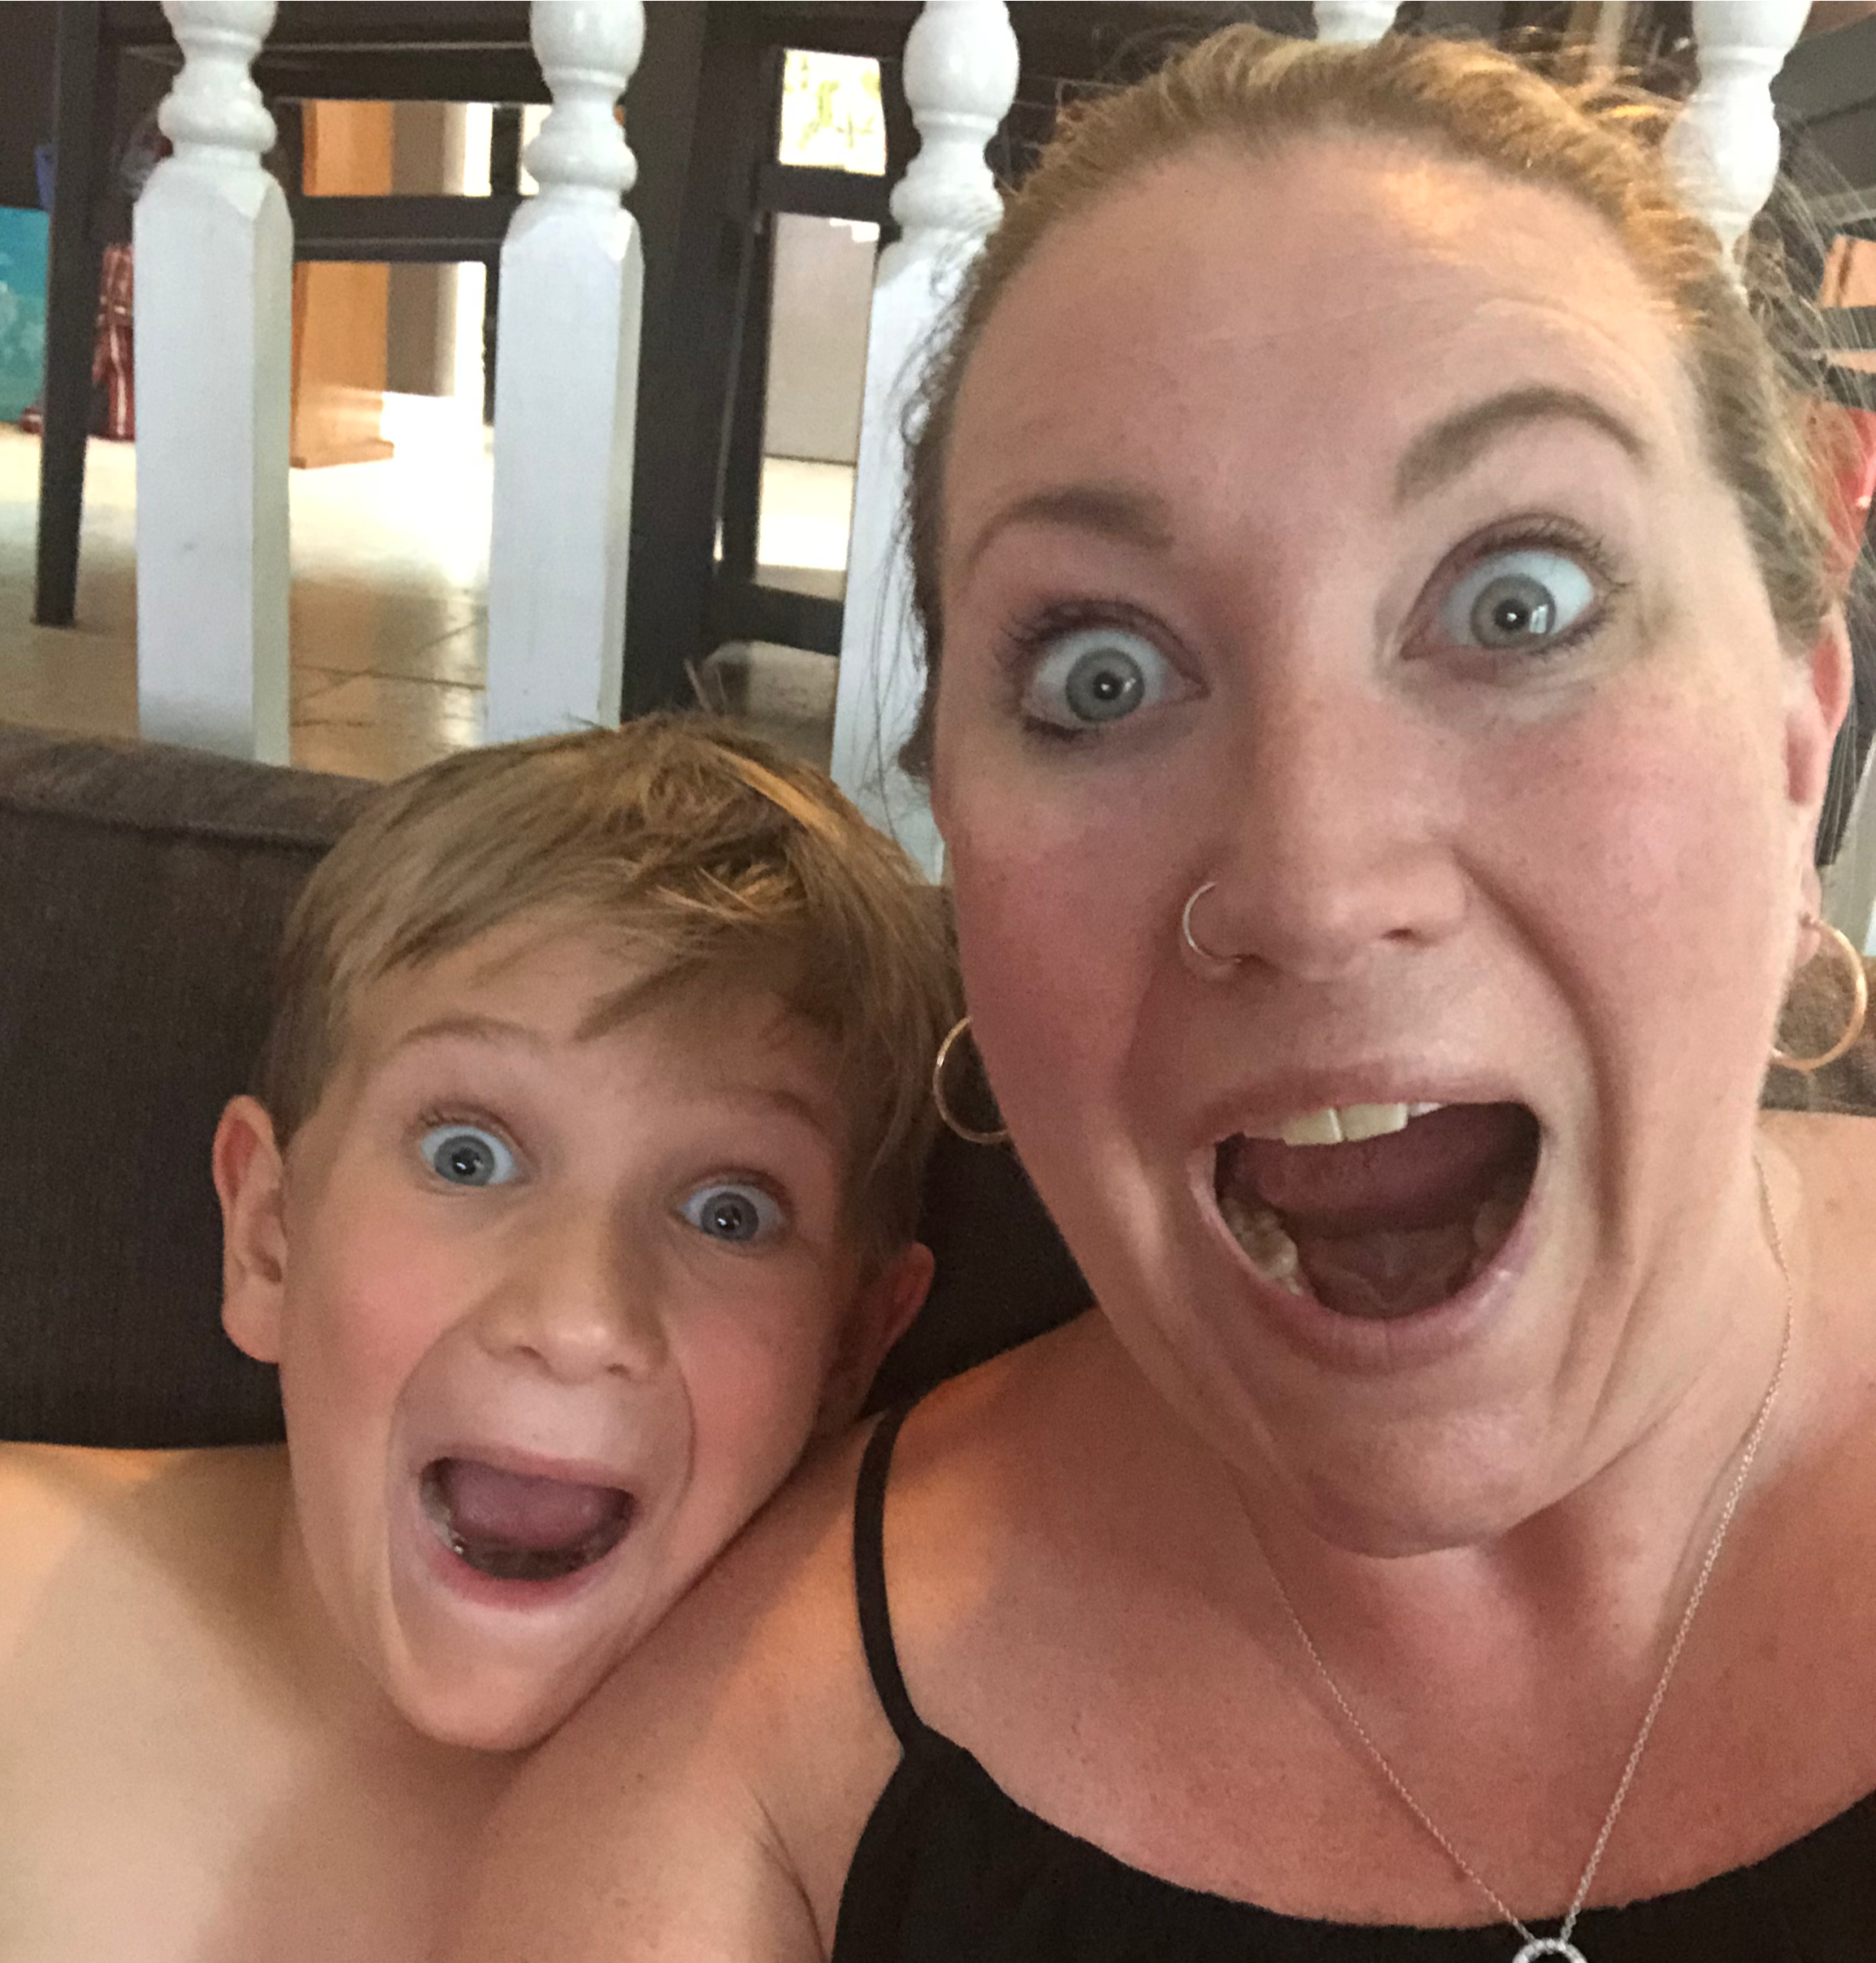 Ashleigh, our Comms Director and her son open mouthed with excitement